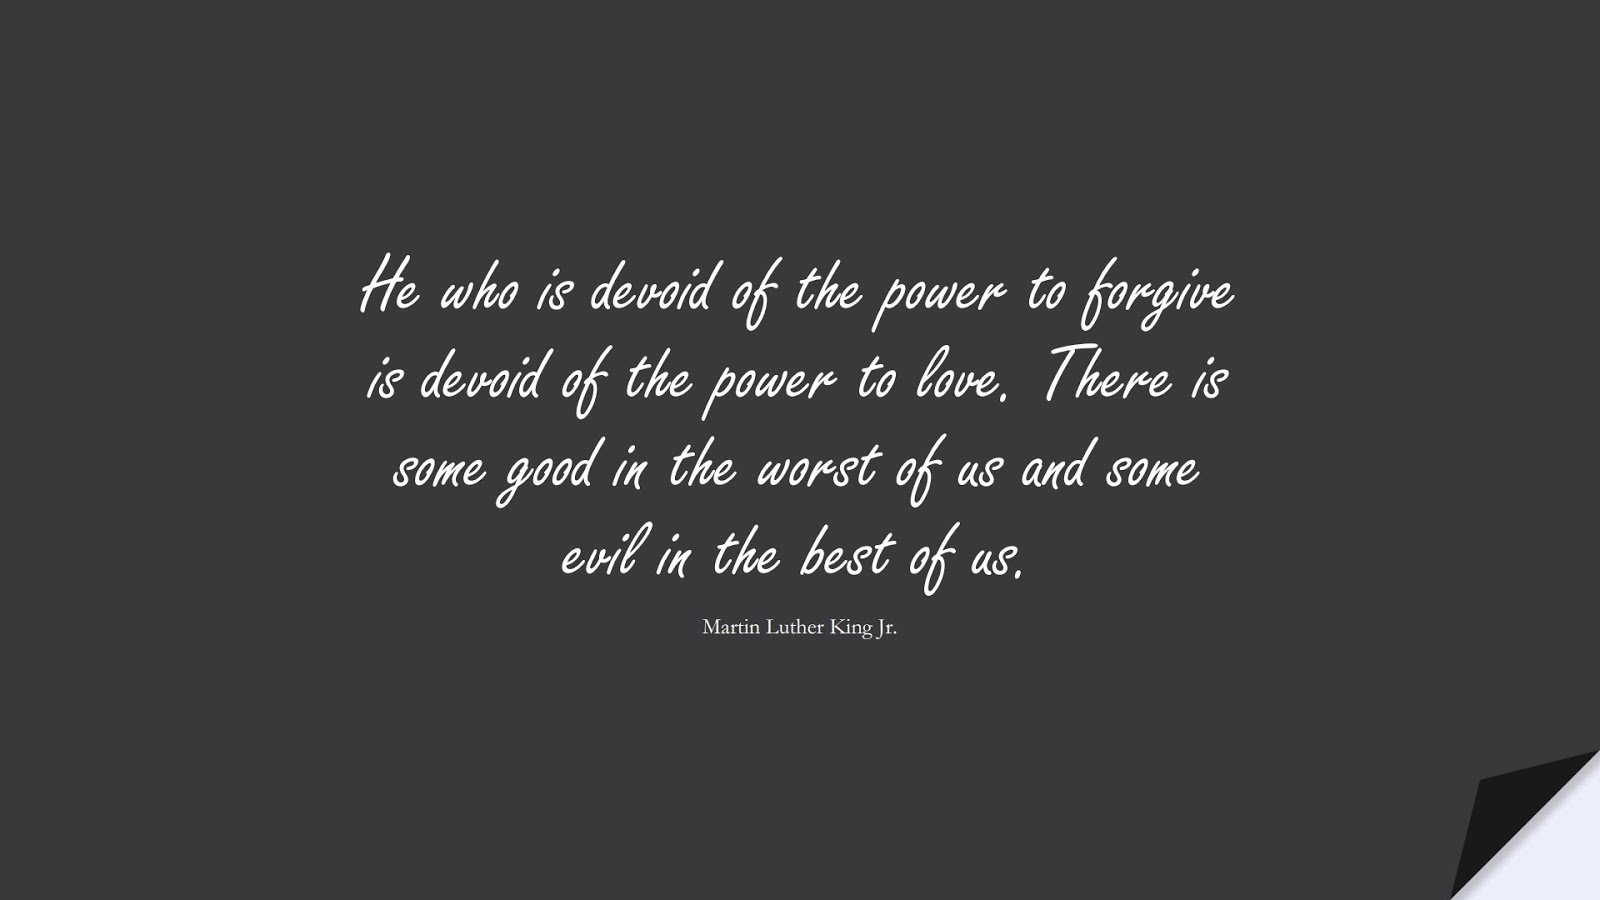 He who is devoid of the power to forgive is devoid of the power to love. There is some good in the worst of us and some evil in the best of us. (Martin Luther King Jr.);  #LoveQuotes